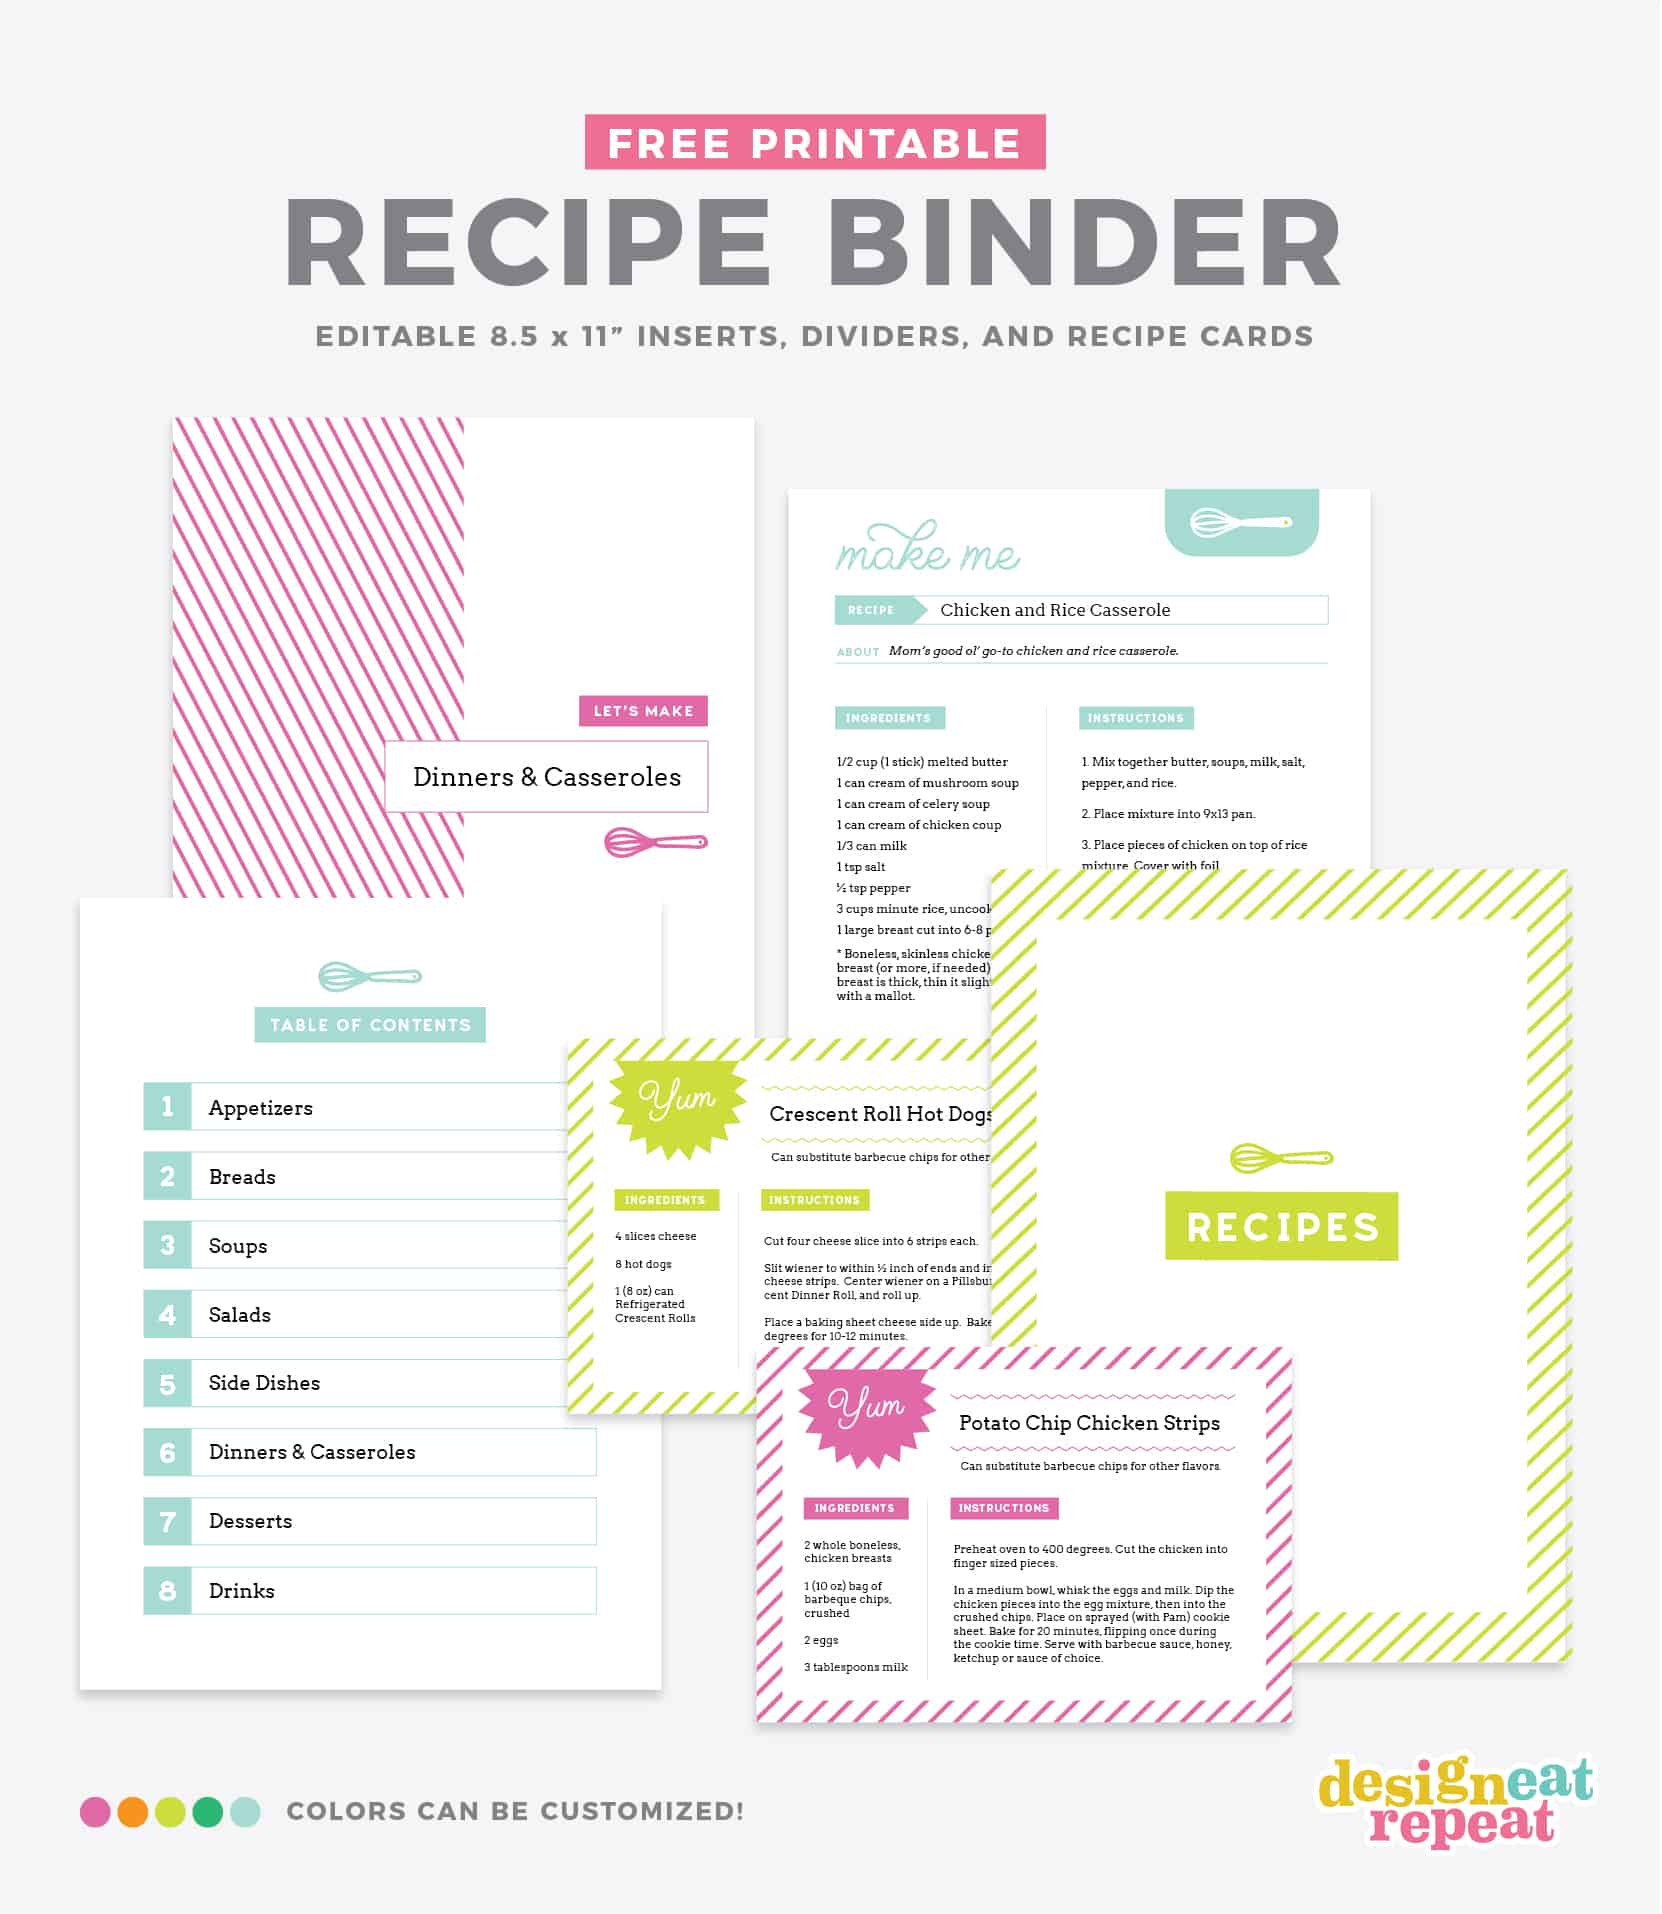 Diy Recipe Book (With Free Printable Recipe Binder Kit!) - Free Recipe Book Templates Printable